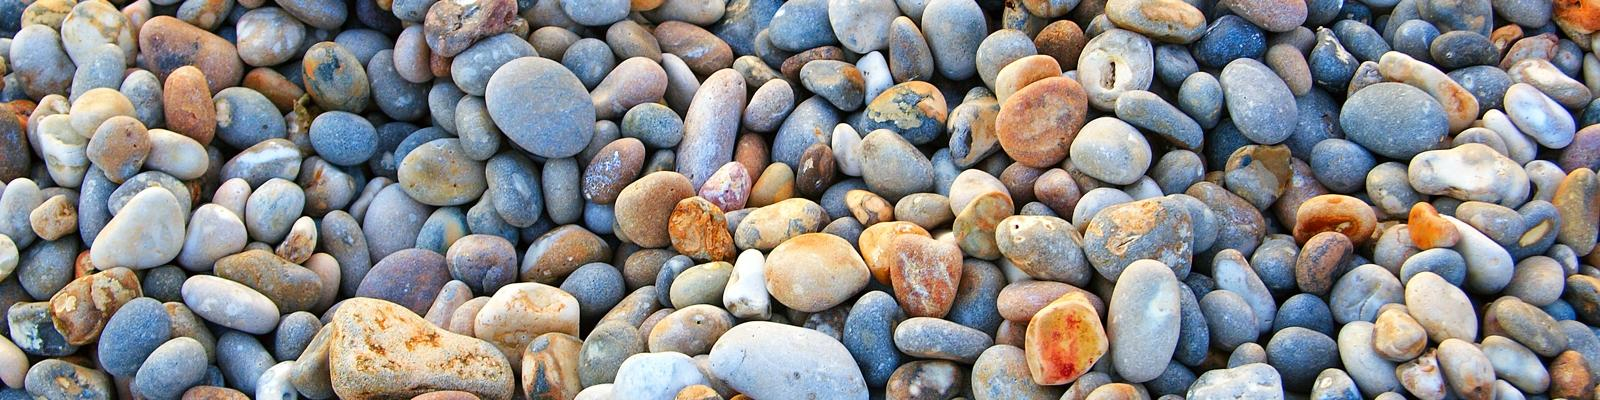 Decorative Pebbles & Cobbles